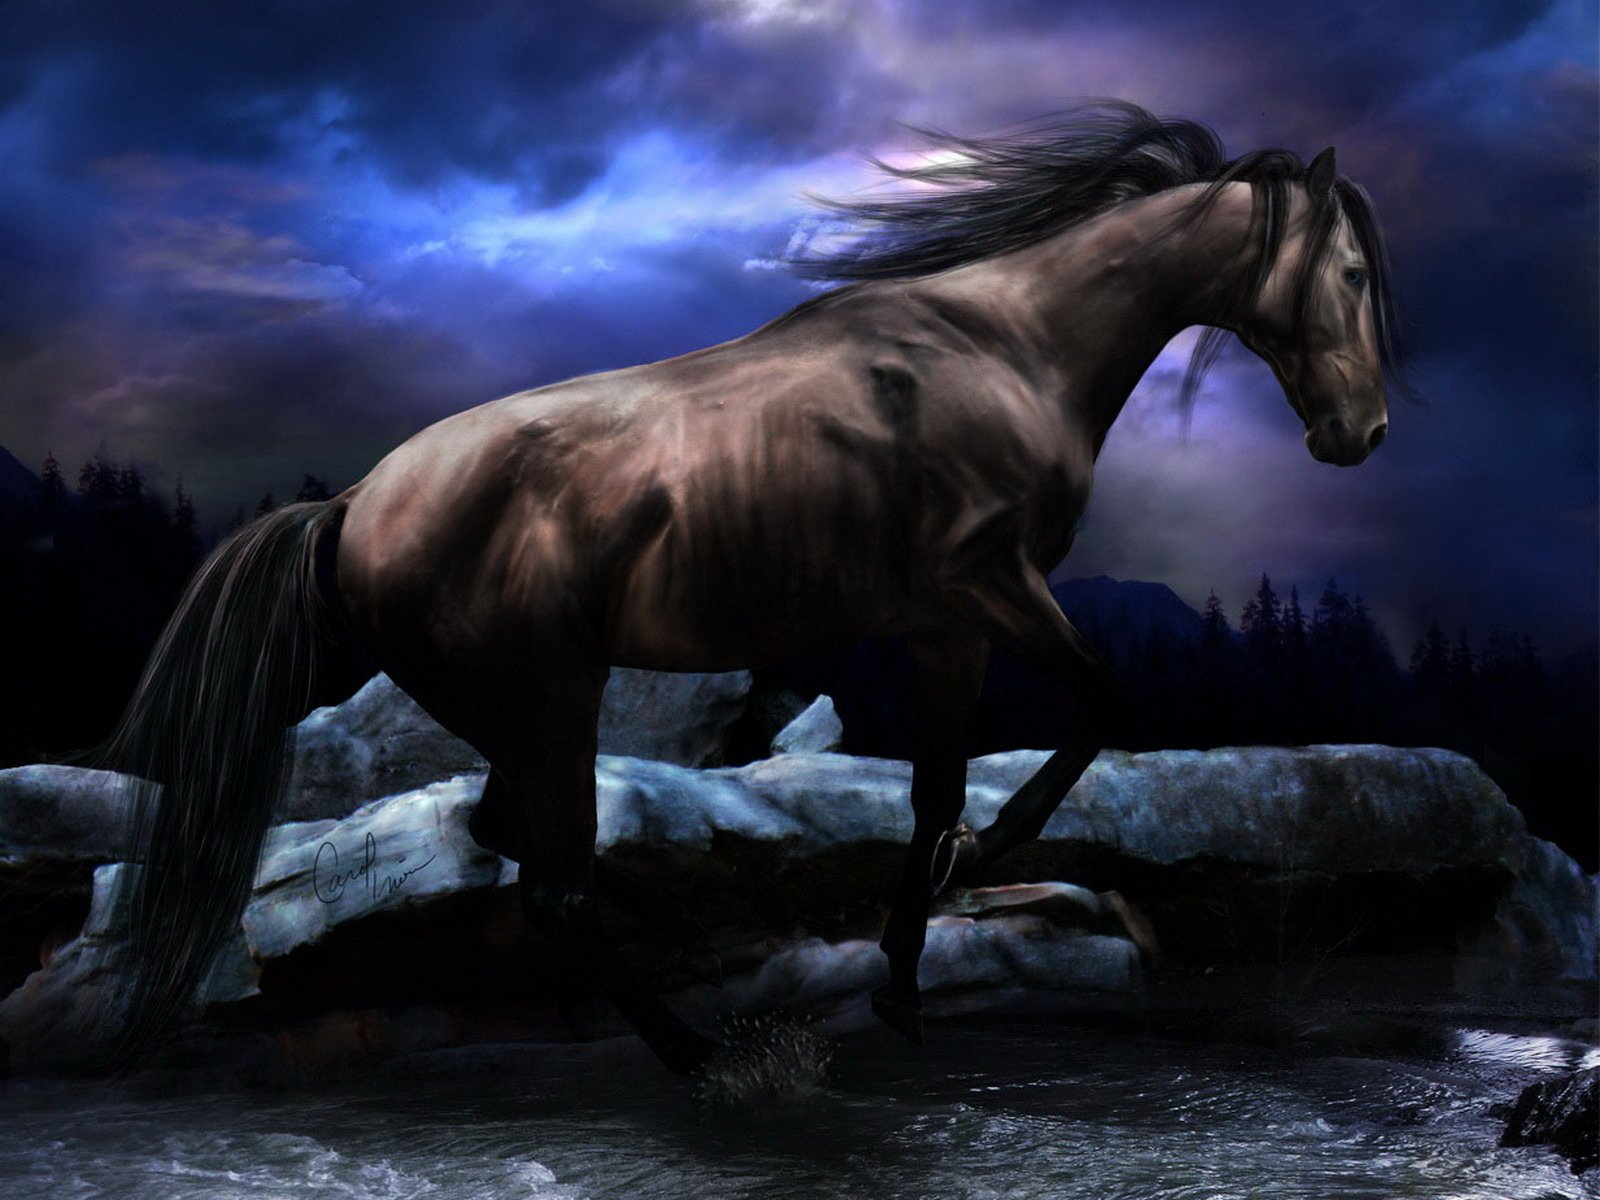 Wallpapers For Cool Backgrounds Of Horses 1600x1200